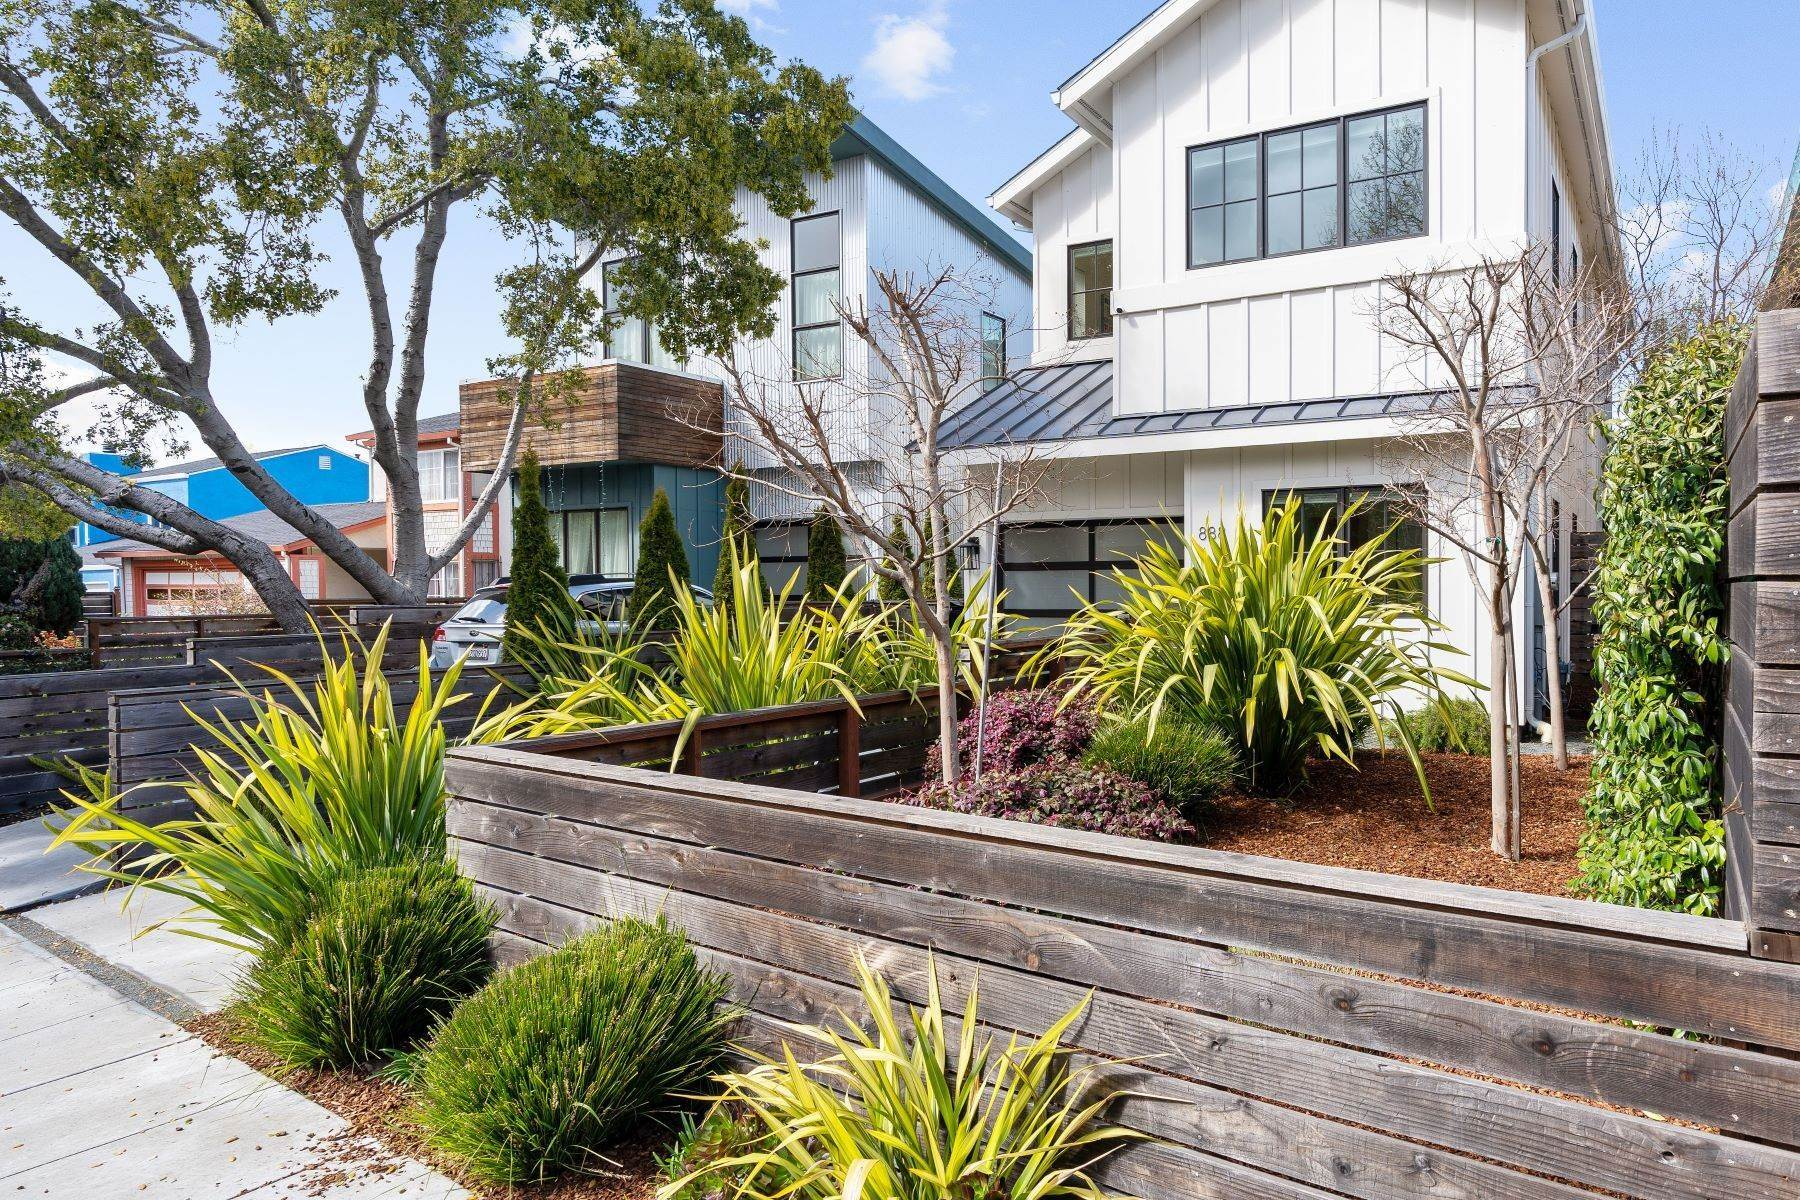 Single Family Homes for Sale at Modern Meets Comfort 888 59th Street Oakland, California 94608 United States